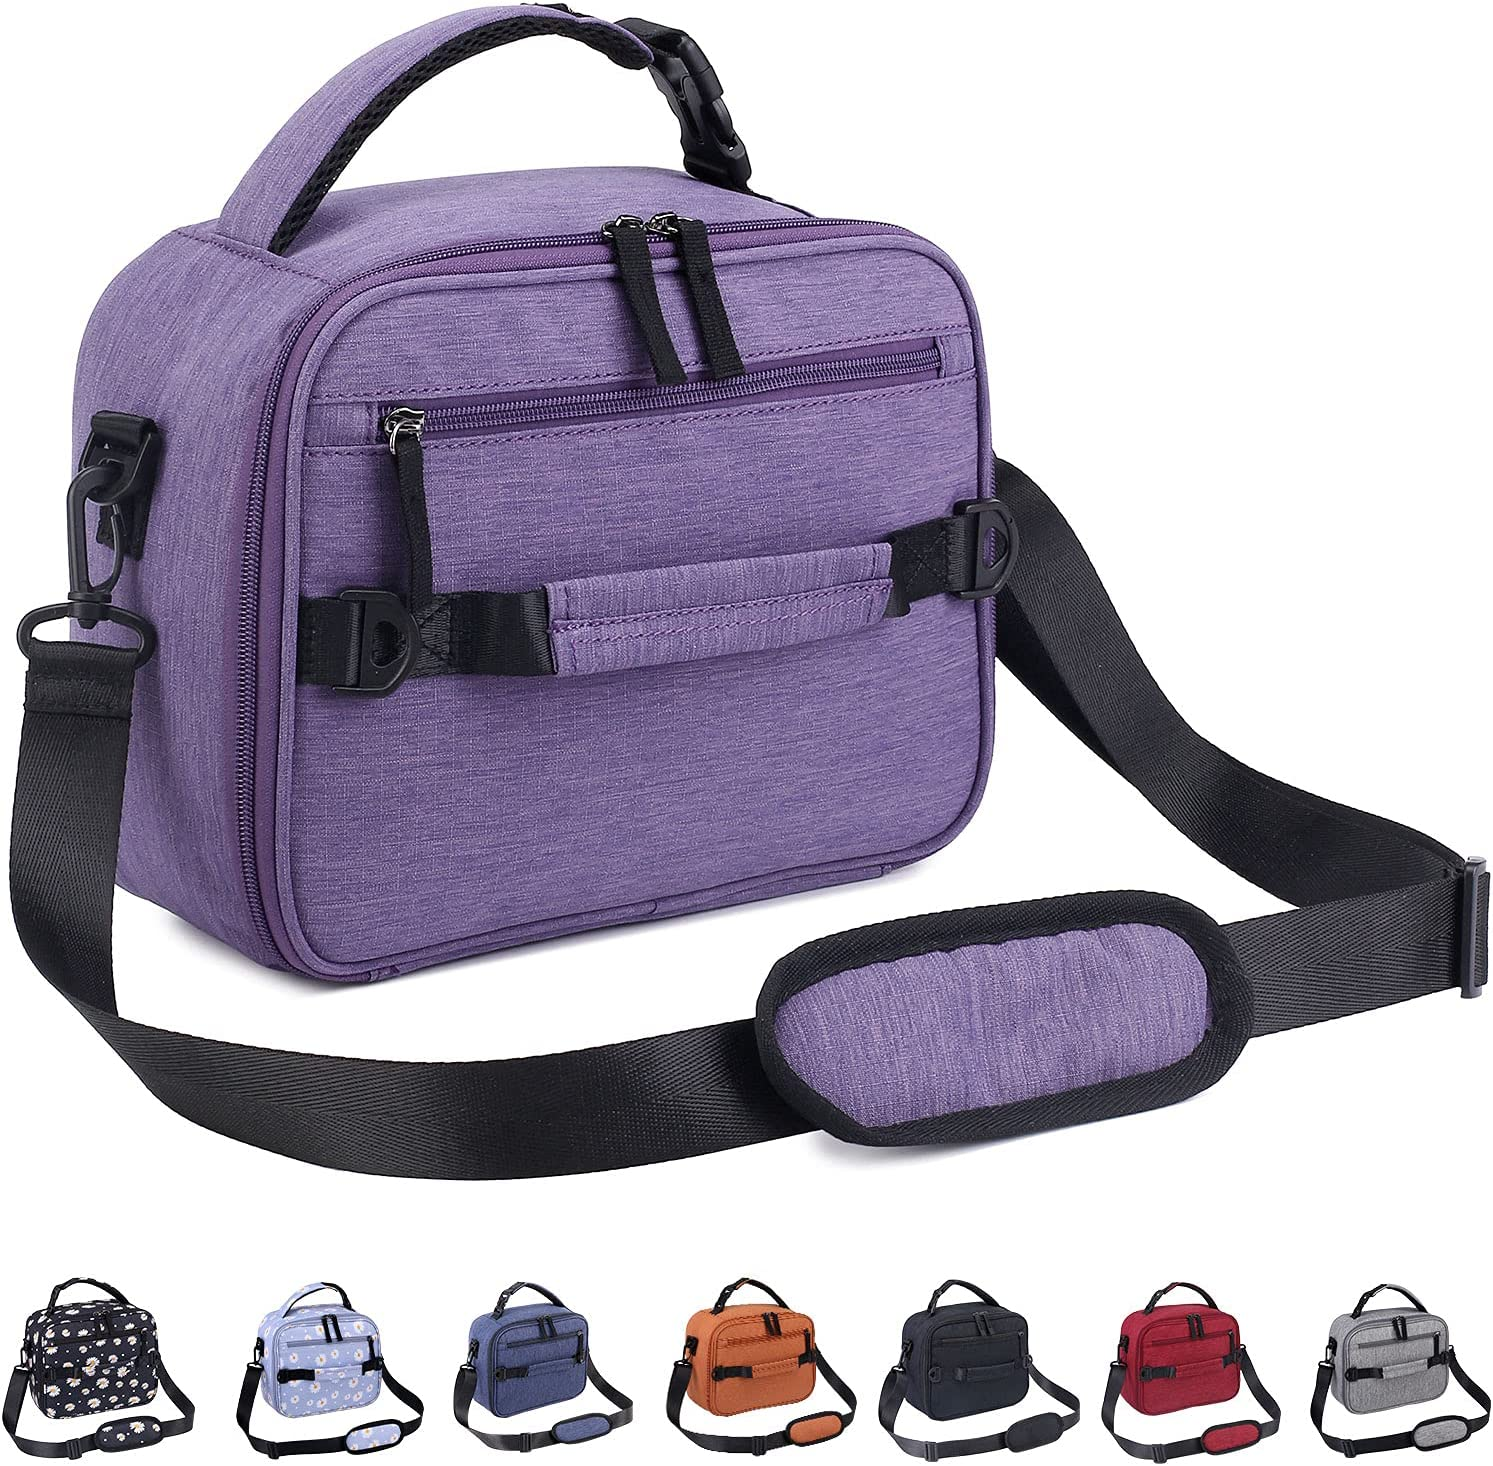 VENLING Insulated Lunch Bag for Work Lunch Box for Men Women Teen Reusable Lunch Bags with Shoulder Strap Adult Lunch Organizer Small Lunch Cooler Bag for Picnic Hiking Camping Beach, Purple